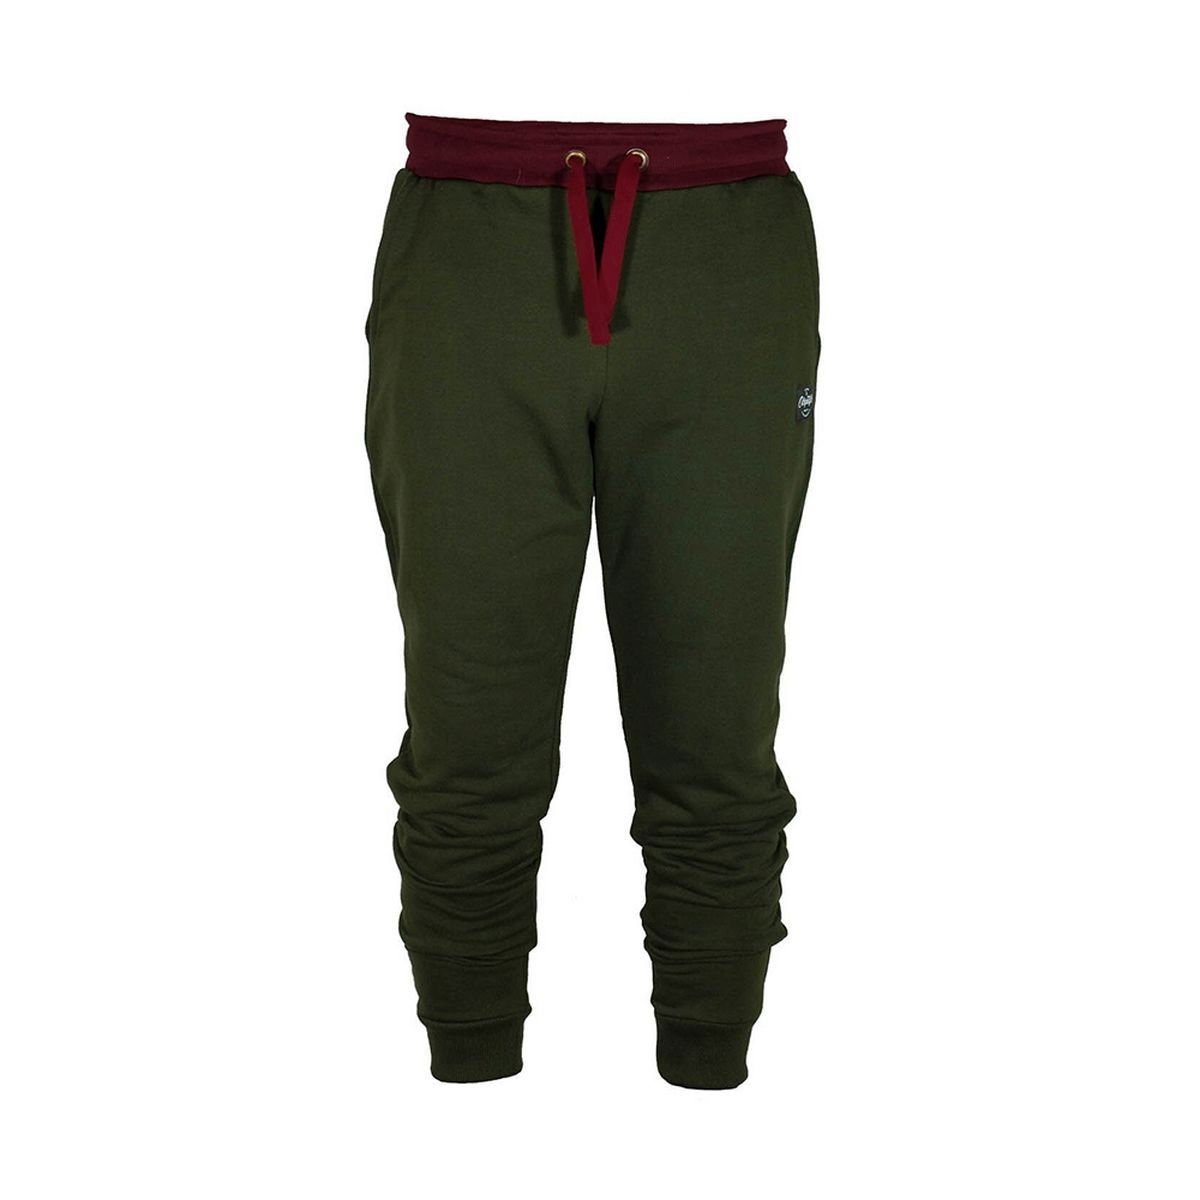 CARPSTYLE GREEN FOREST JOGGERS - XXL